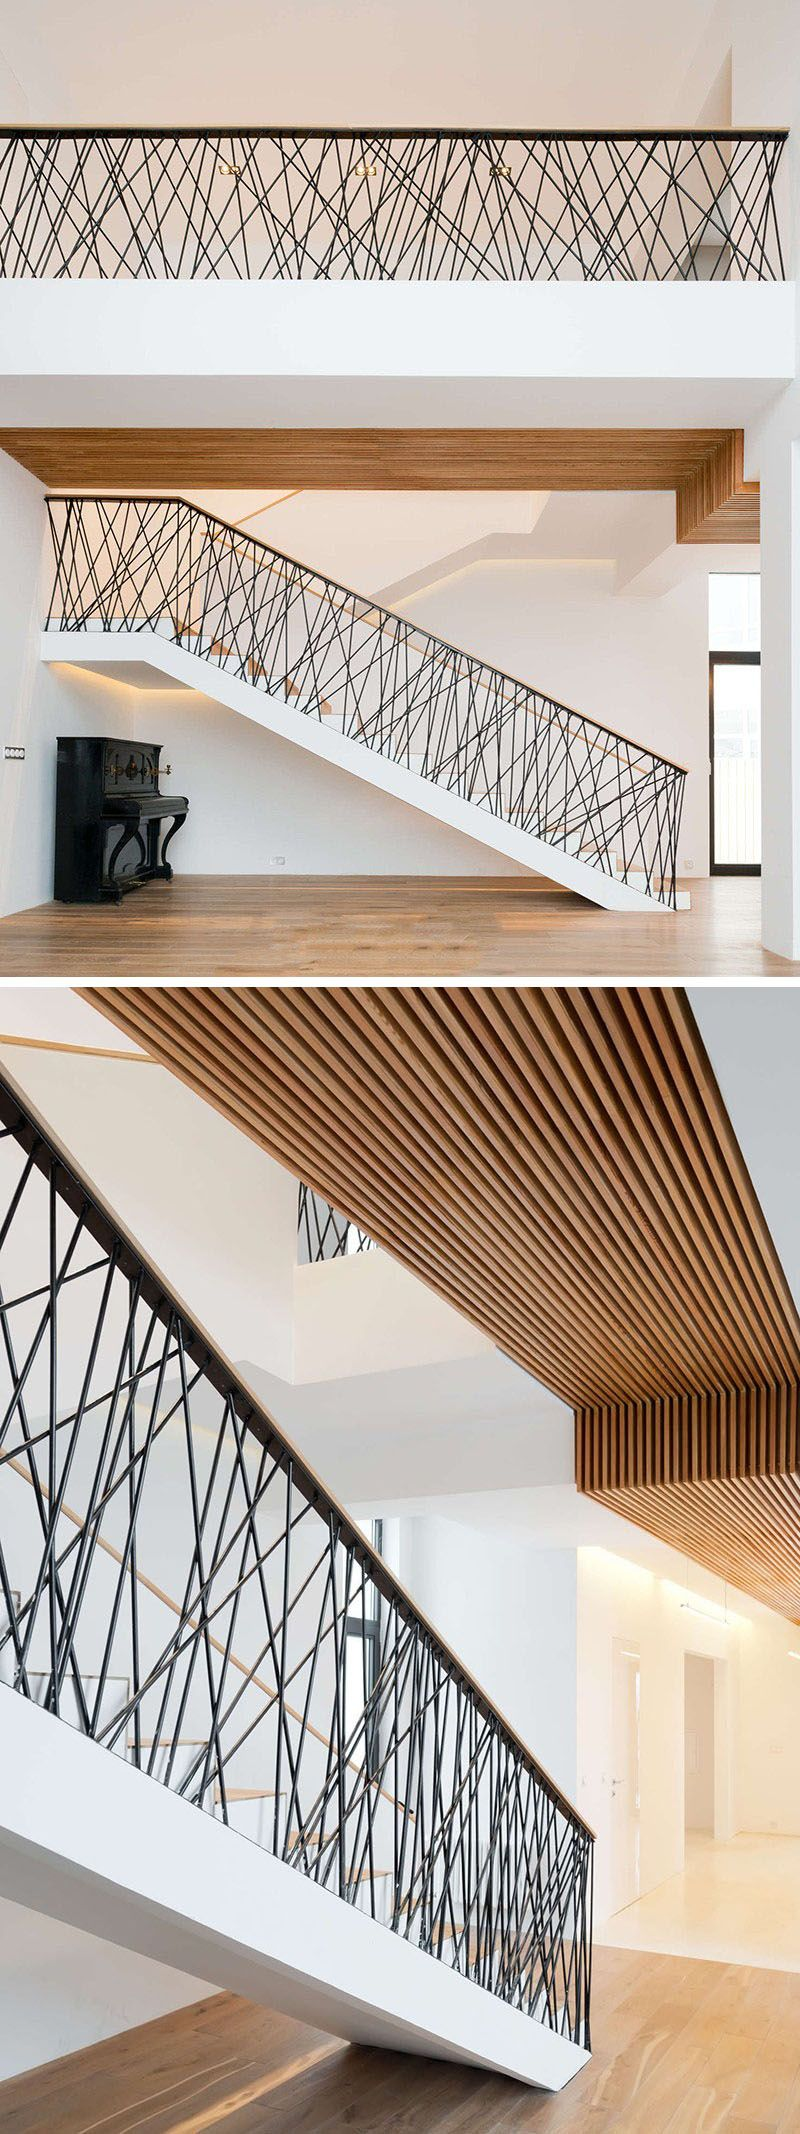 Randomly arranged steel rods have been placed on the railings of these stairs to both protect and act as a focal point in the home.